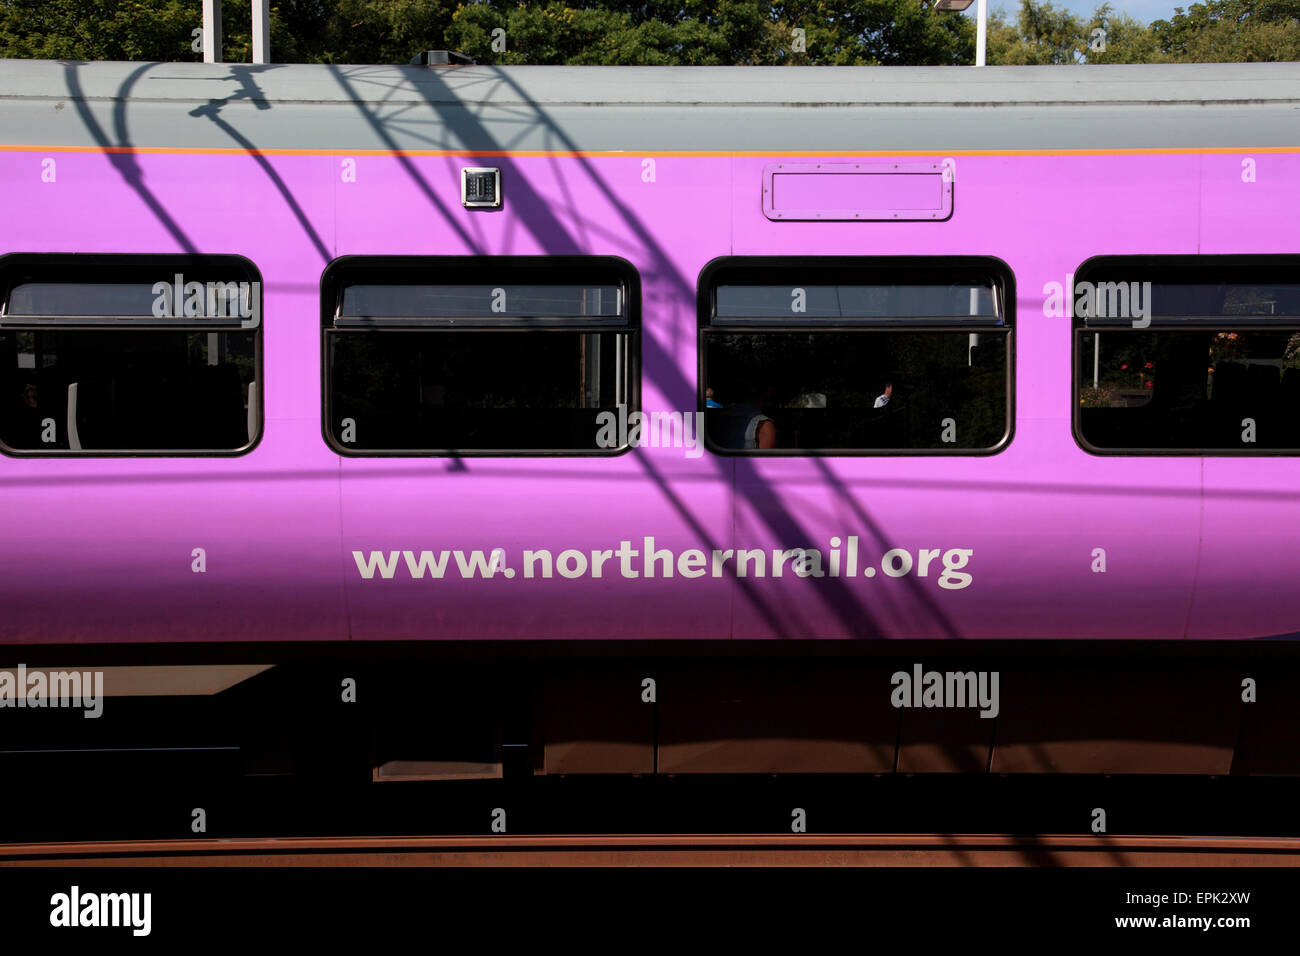 The carriage of a Northern Rail train at Kidsgrove near Stoke on Trent, Staffordshire - Stock Image